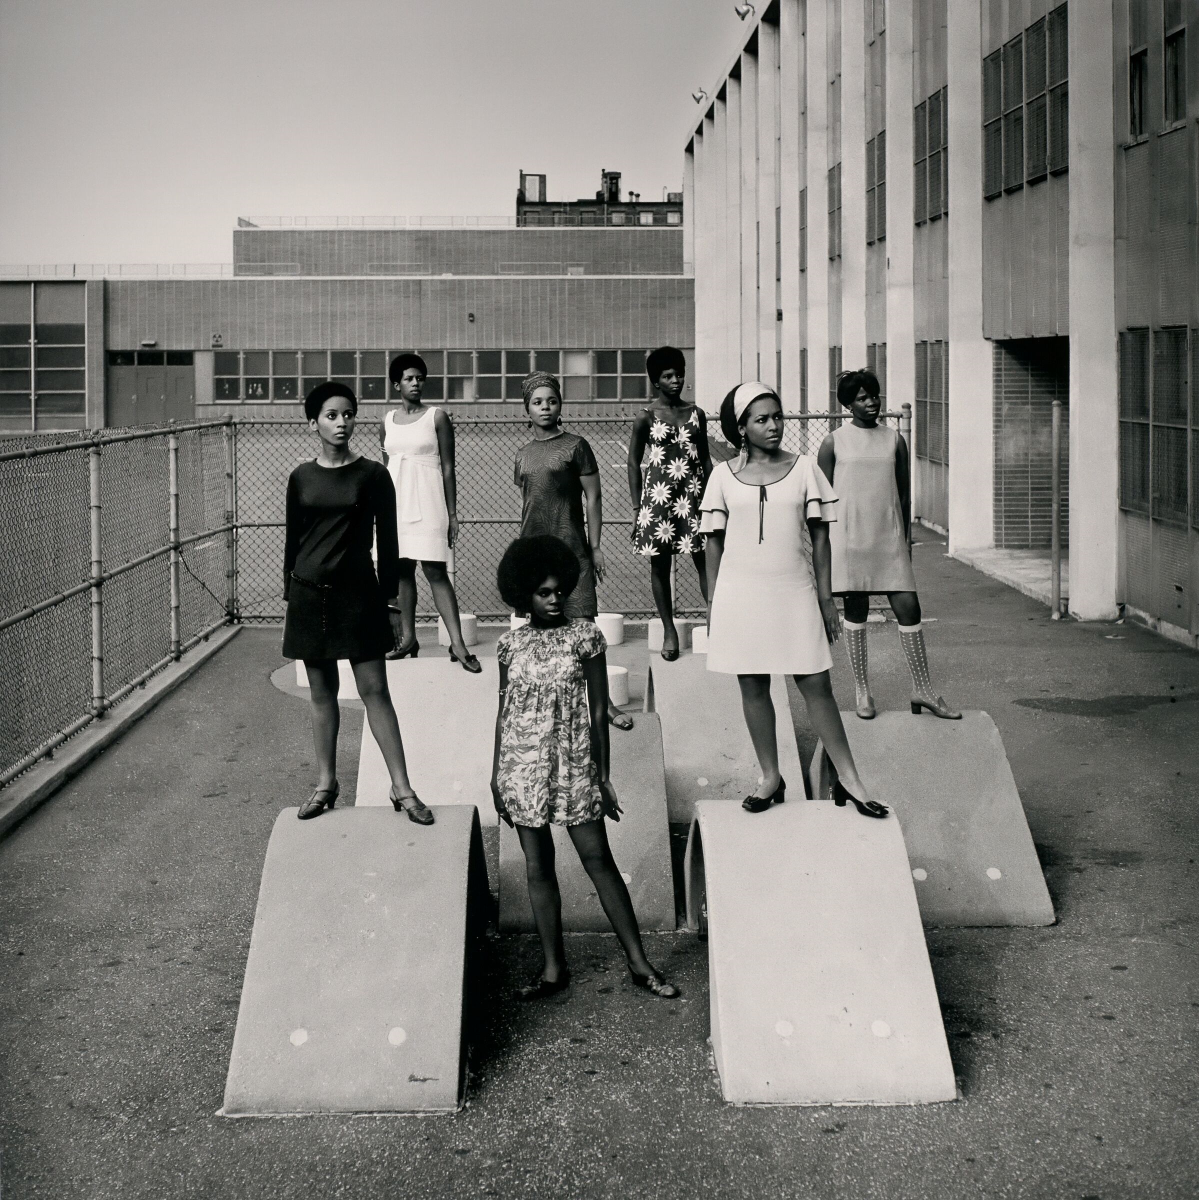 Kwame Brathwaite, Untitled (Photo Shoot at a School for One of the Many Modeling Groups Who Had Begun to Embrace Natural Hairstyles in the 1960s), c. 1966, archival pigment print, the Museum of Fine Arts, Houston. © Kwame Brathwaite